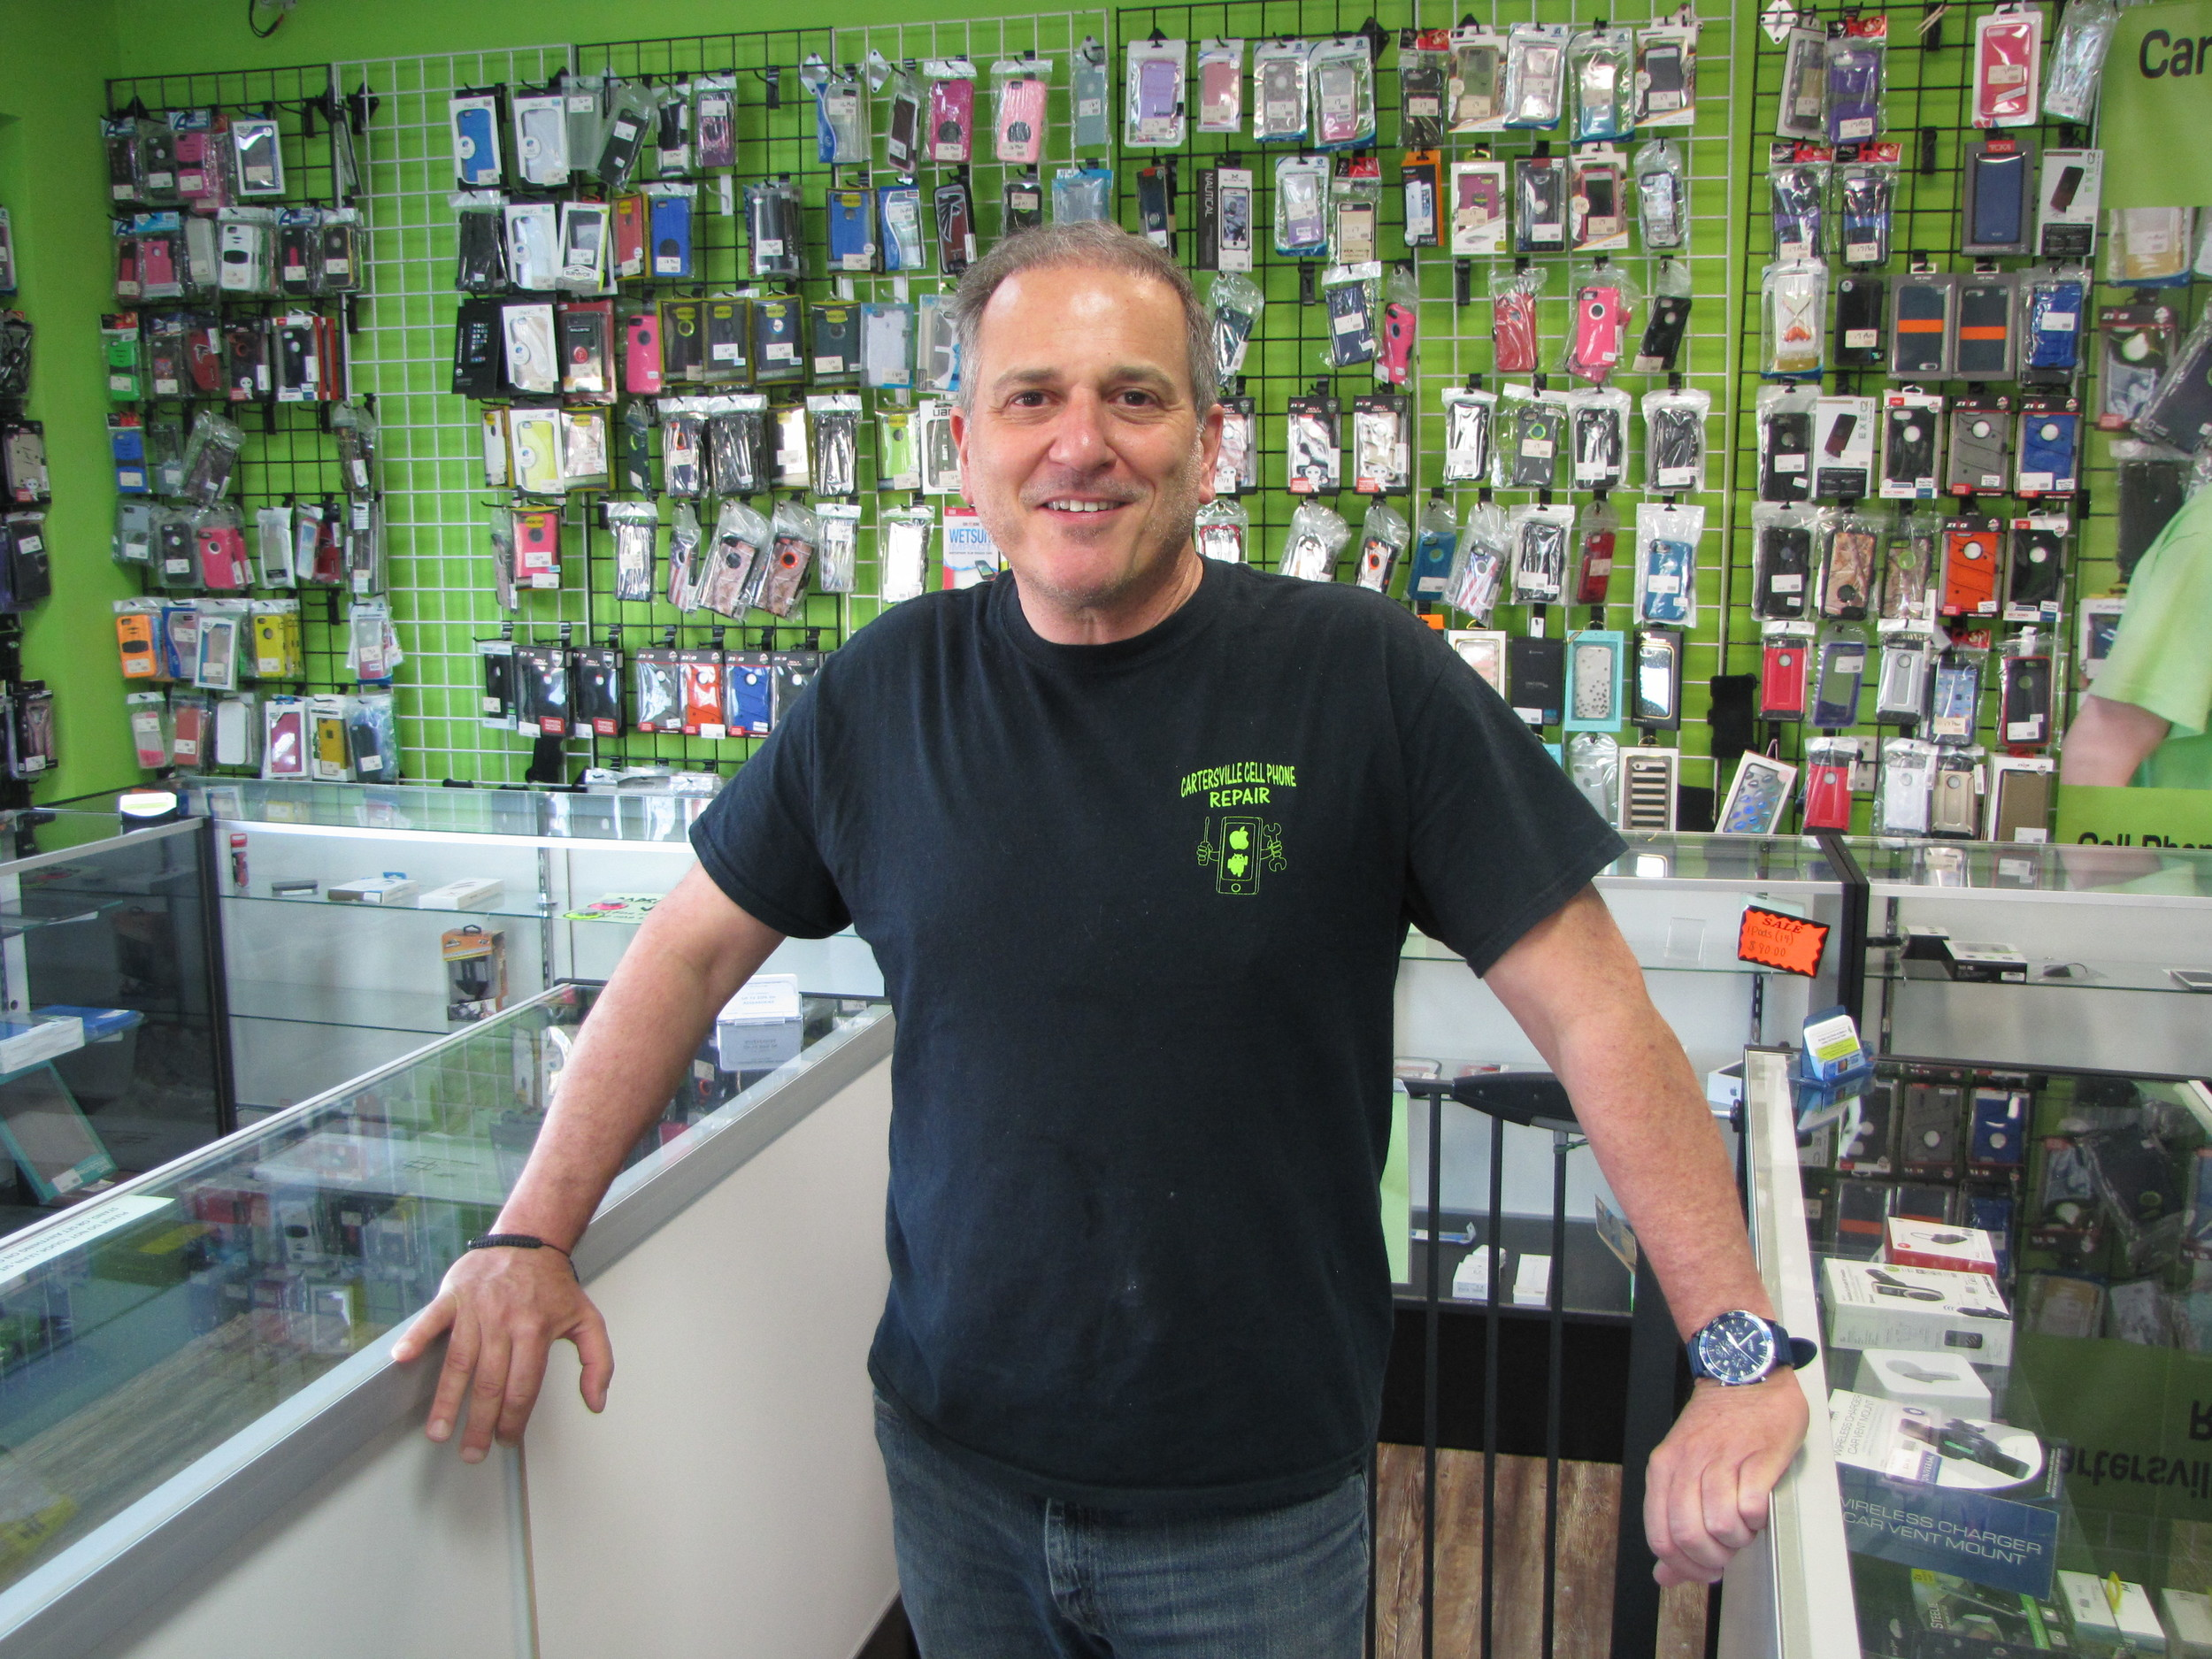 Cartersville Cell Phone Repair owner Chris Nichols offers a wide variety of services and products at his 106 Merchants Square Drive business.